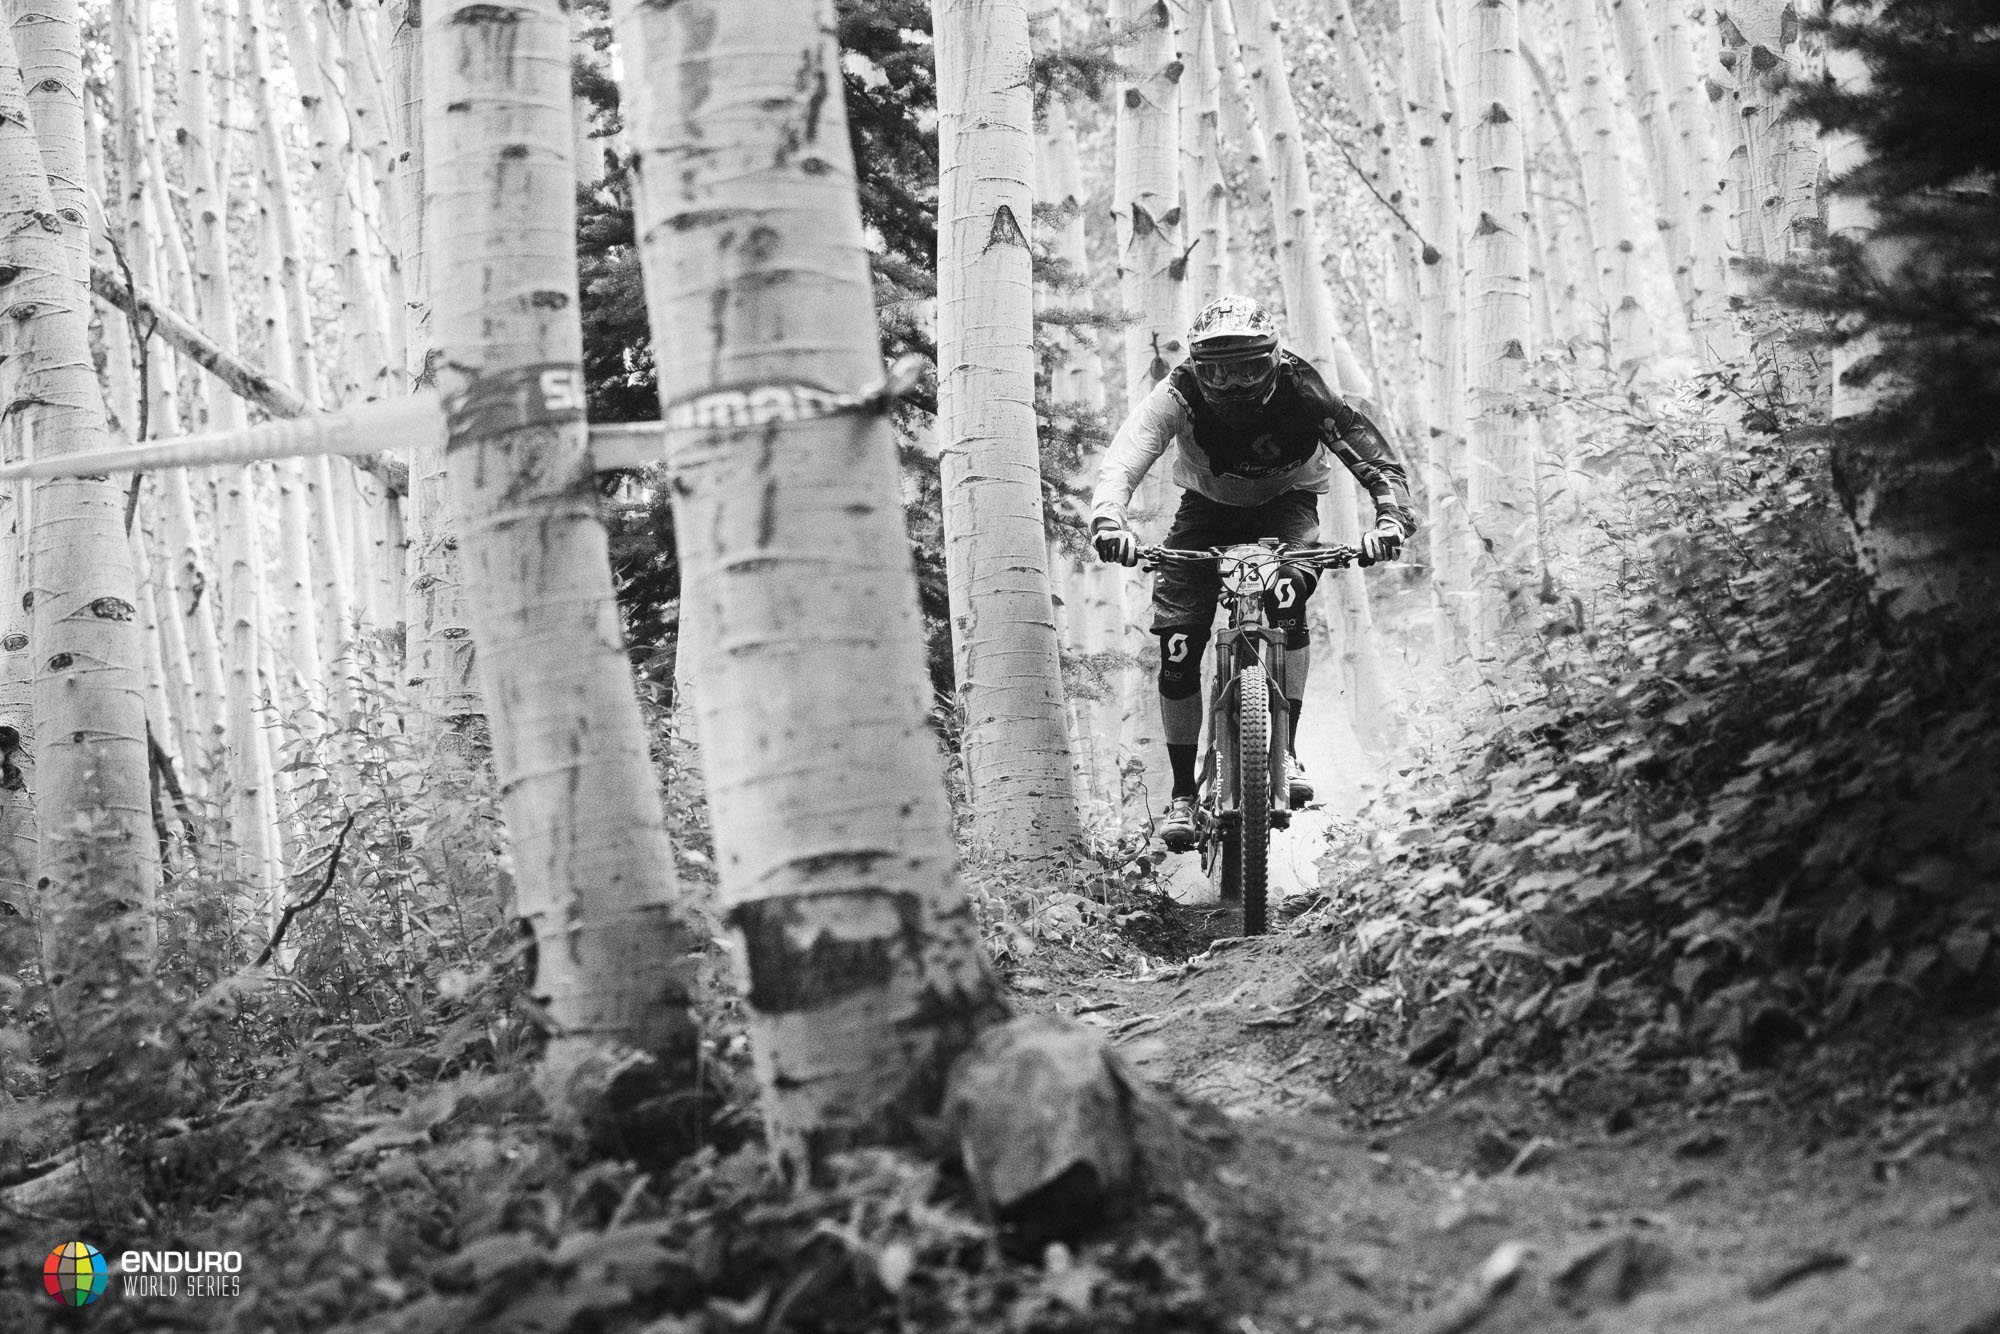 Remy Absalon has had a consistent day and pushed hard in the aspens to 7th overall